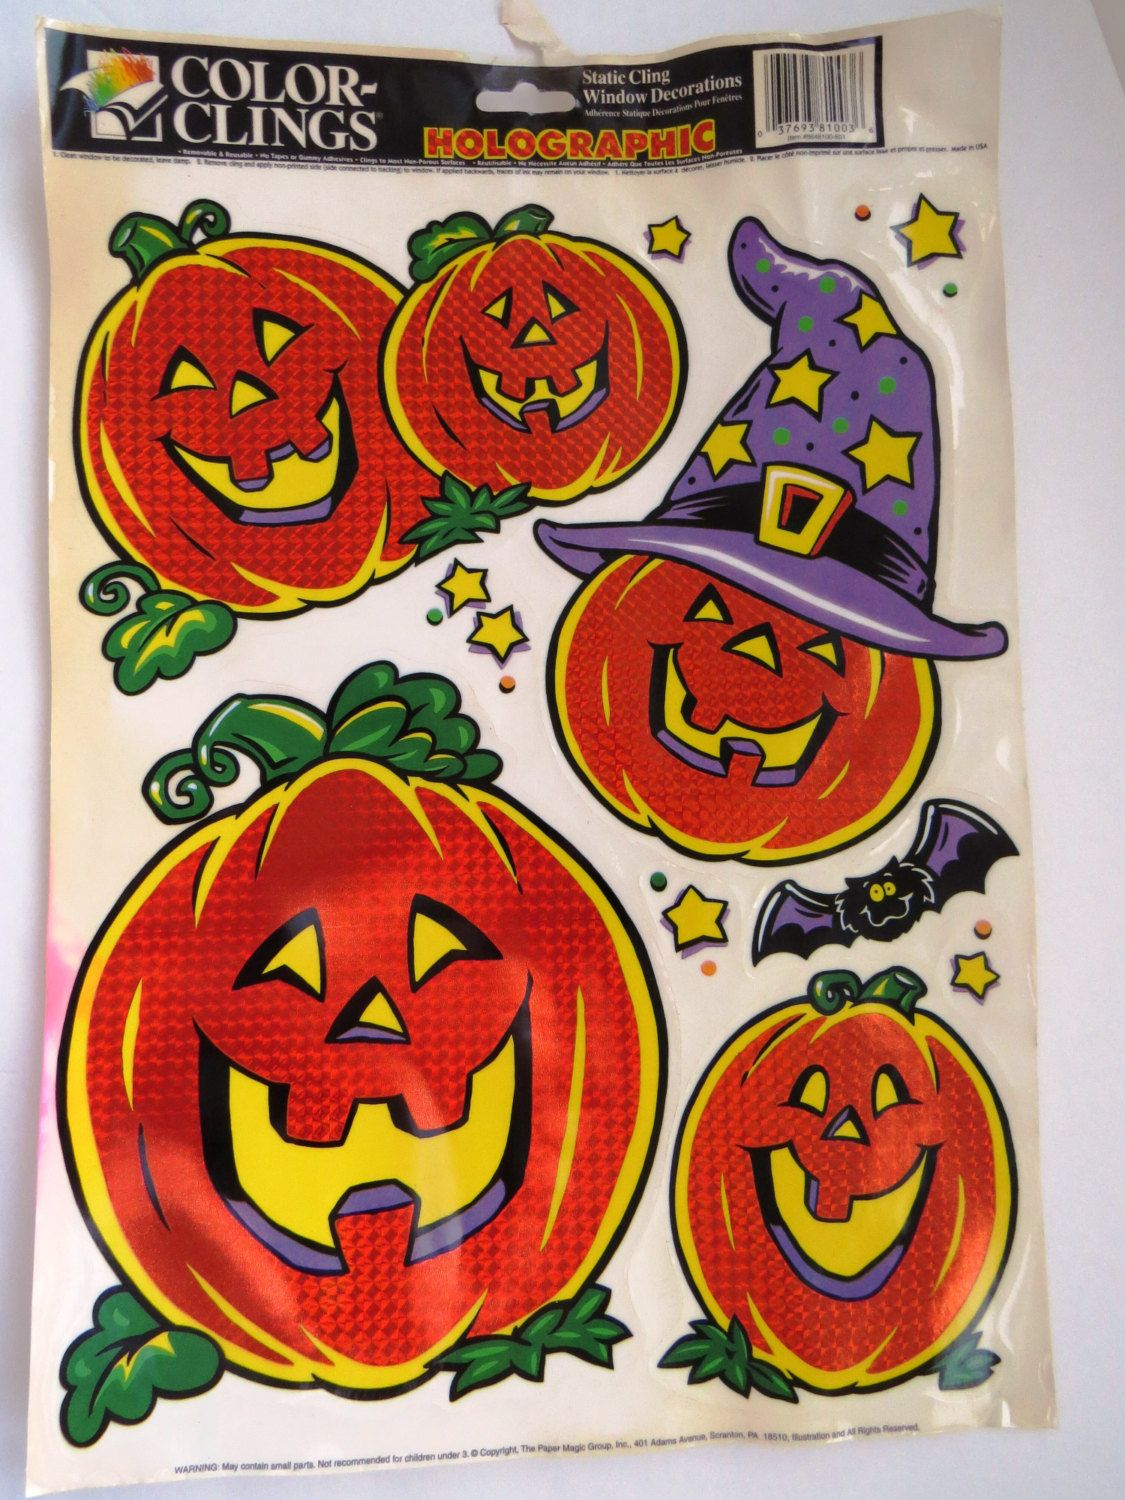 holographic halloween window clings static cling window decorations jack o lanterns bat - Halloween Window Clings